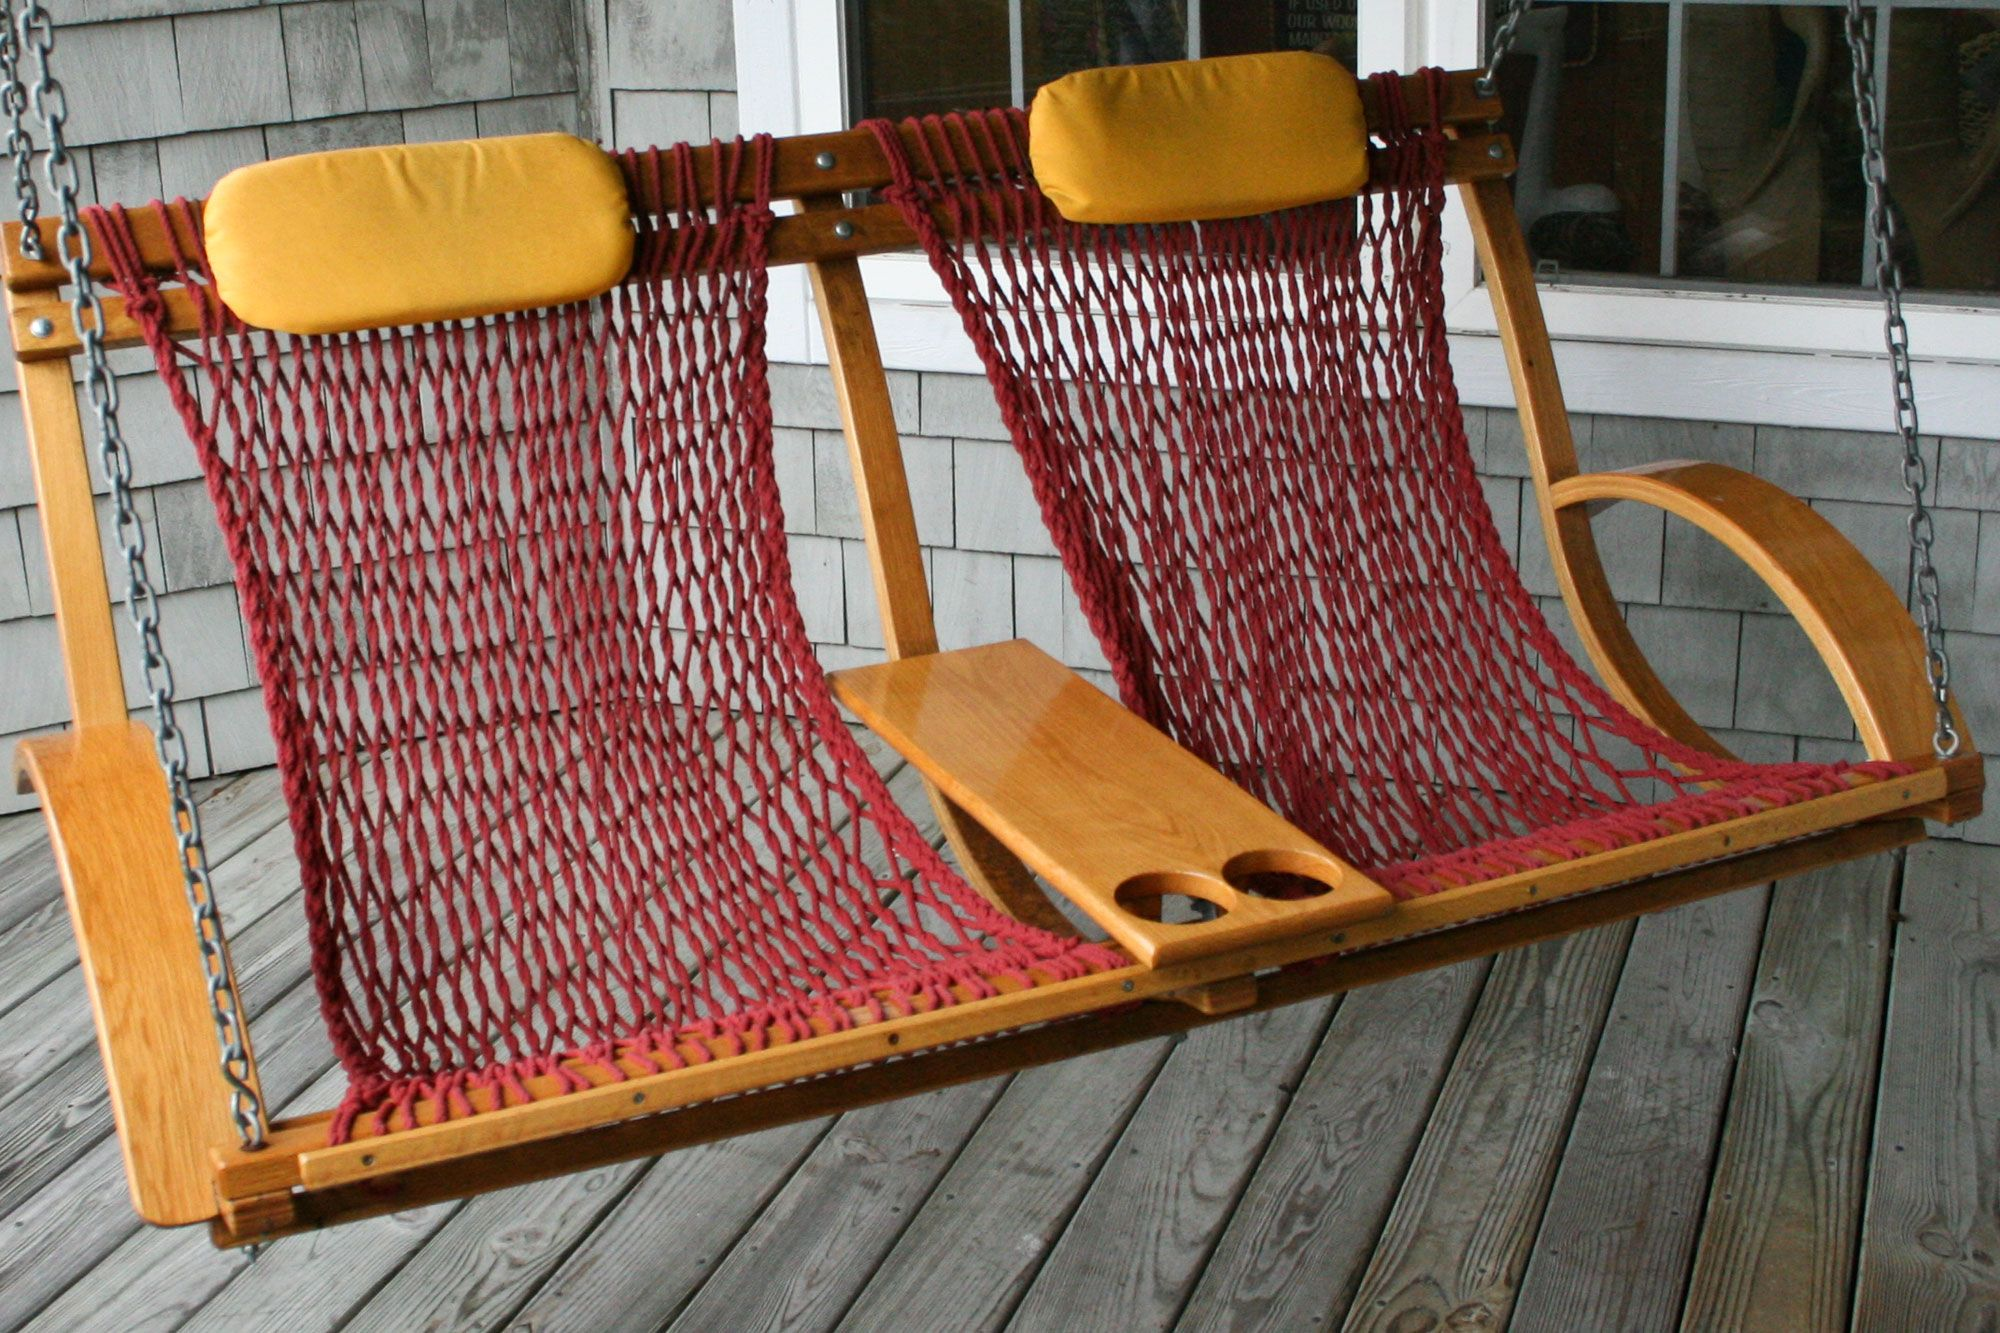 Porch Swing by Nags Head Hammocks Porch swing, Hammock